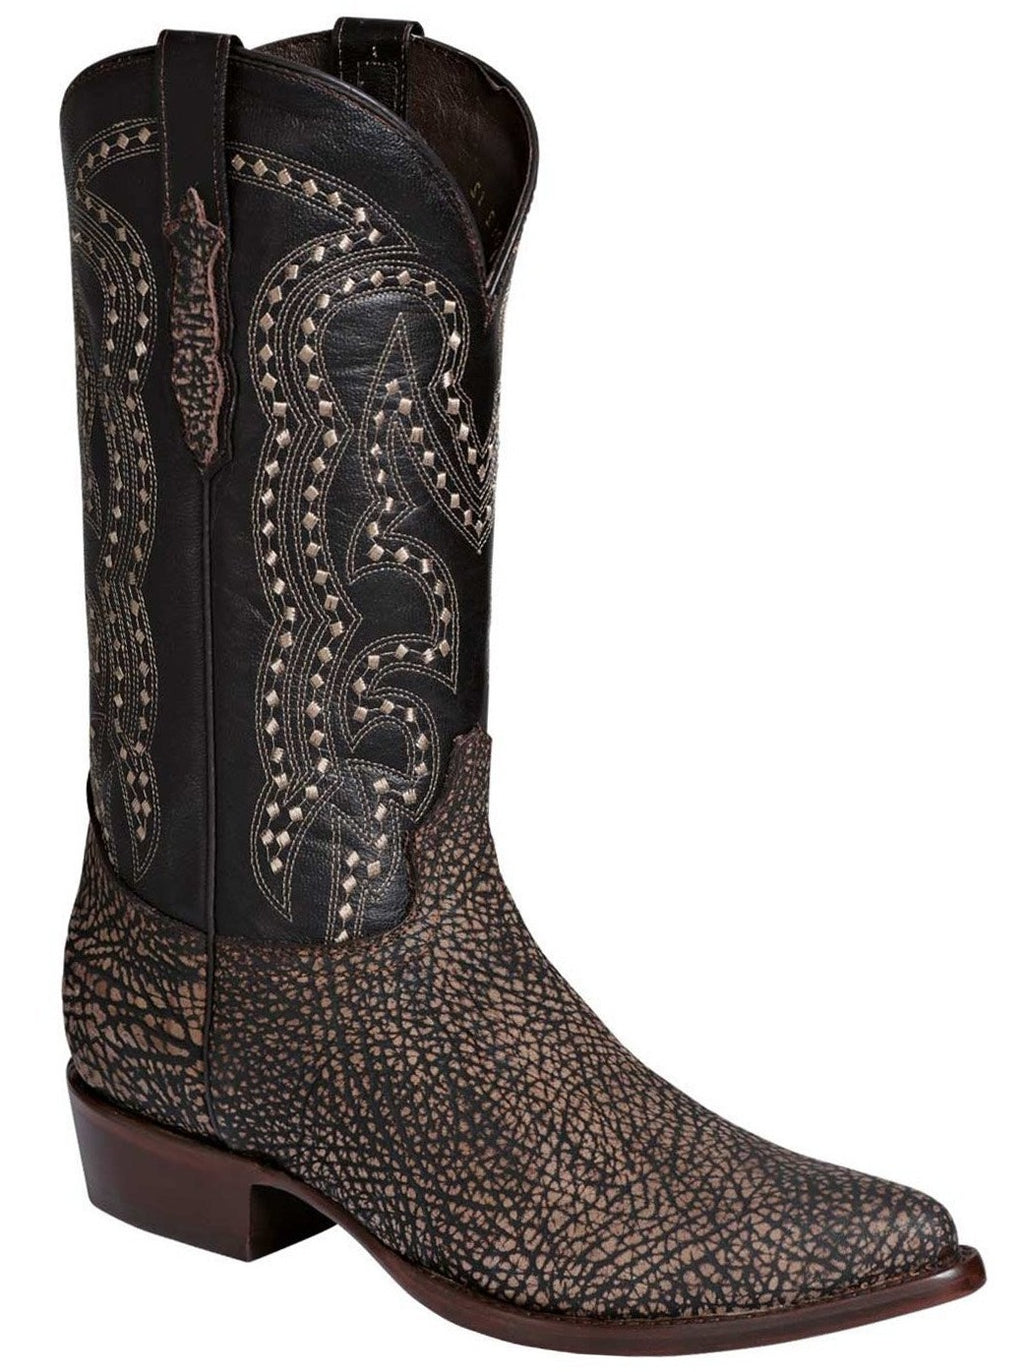 EL GENERAL Men's Cigar Bull Shoulder Cowboy Boots - Pointed Toe